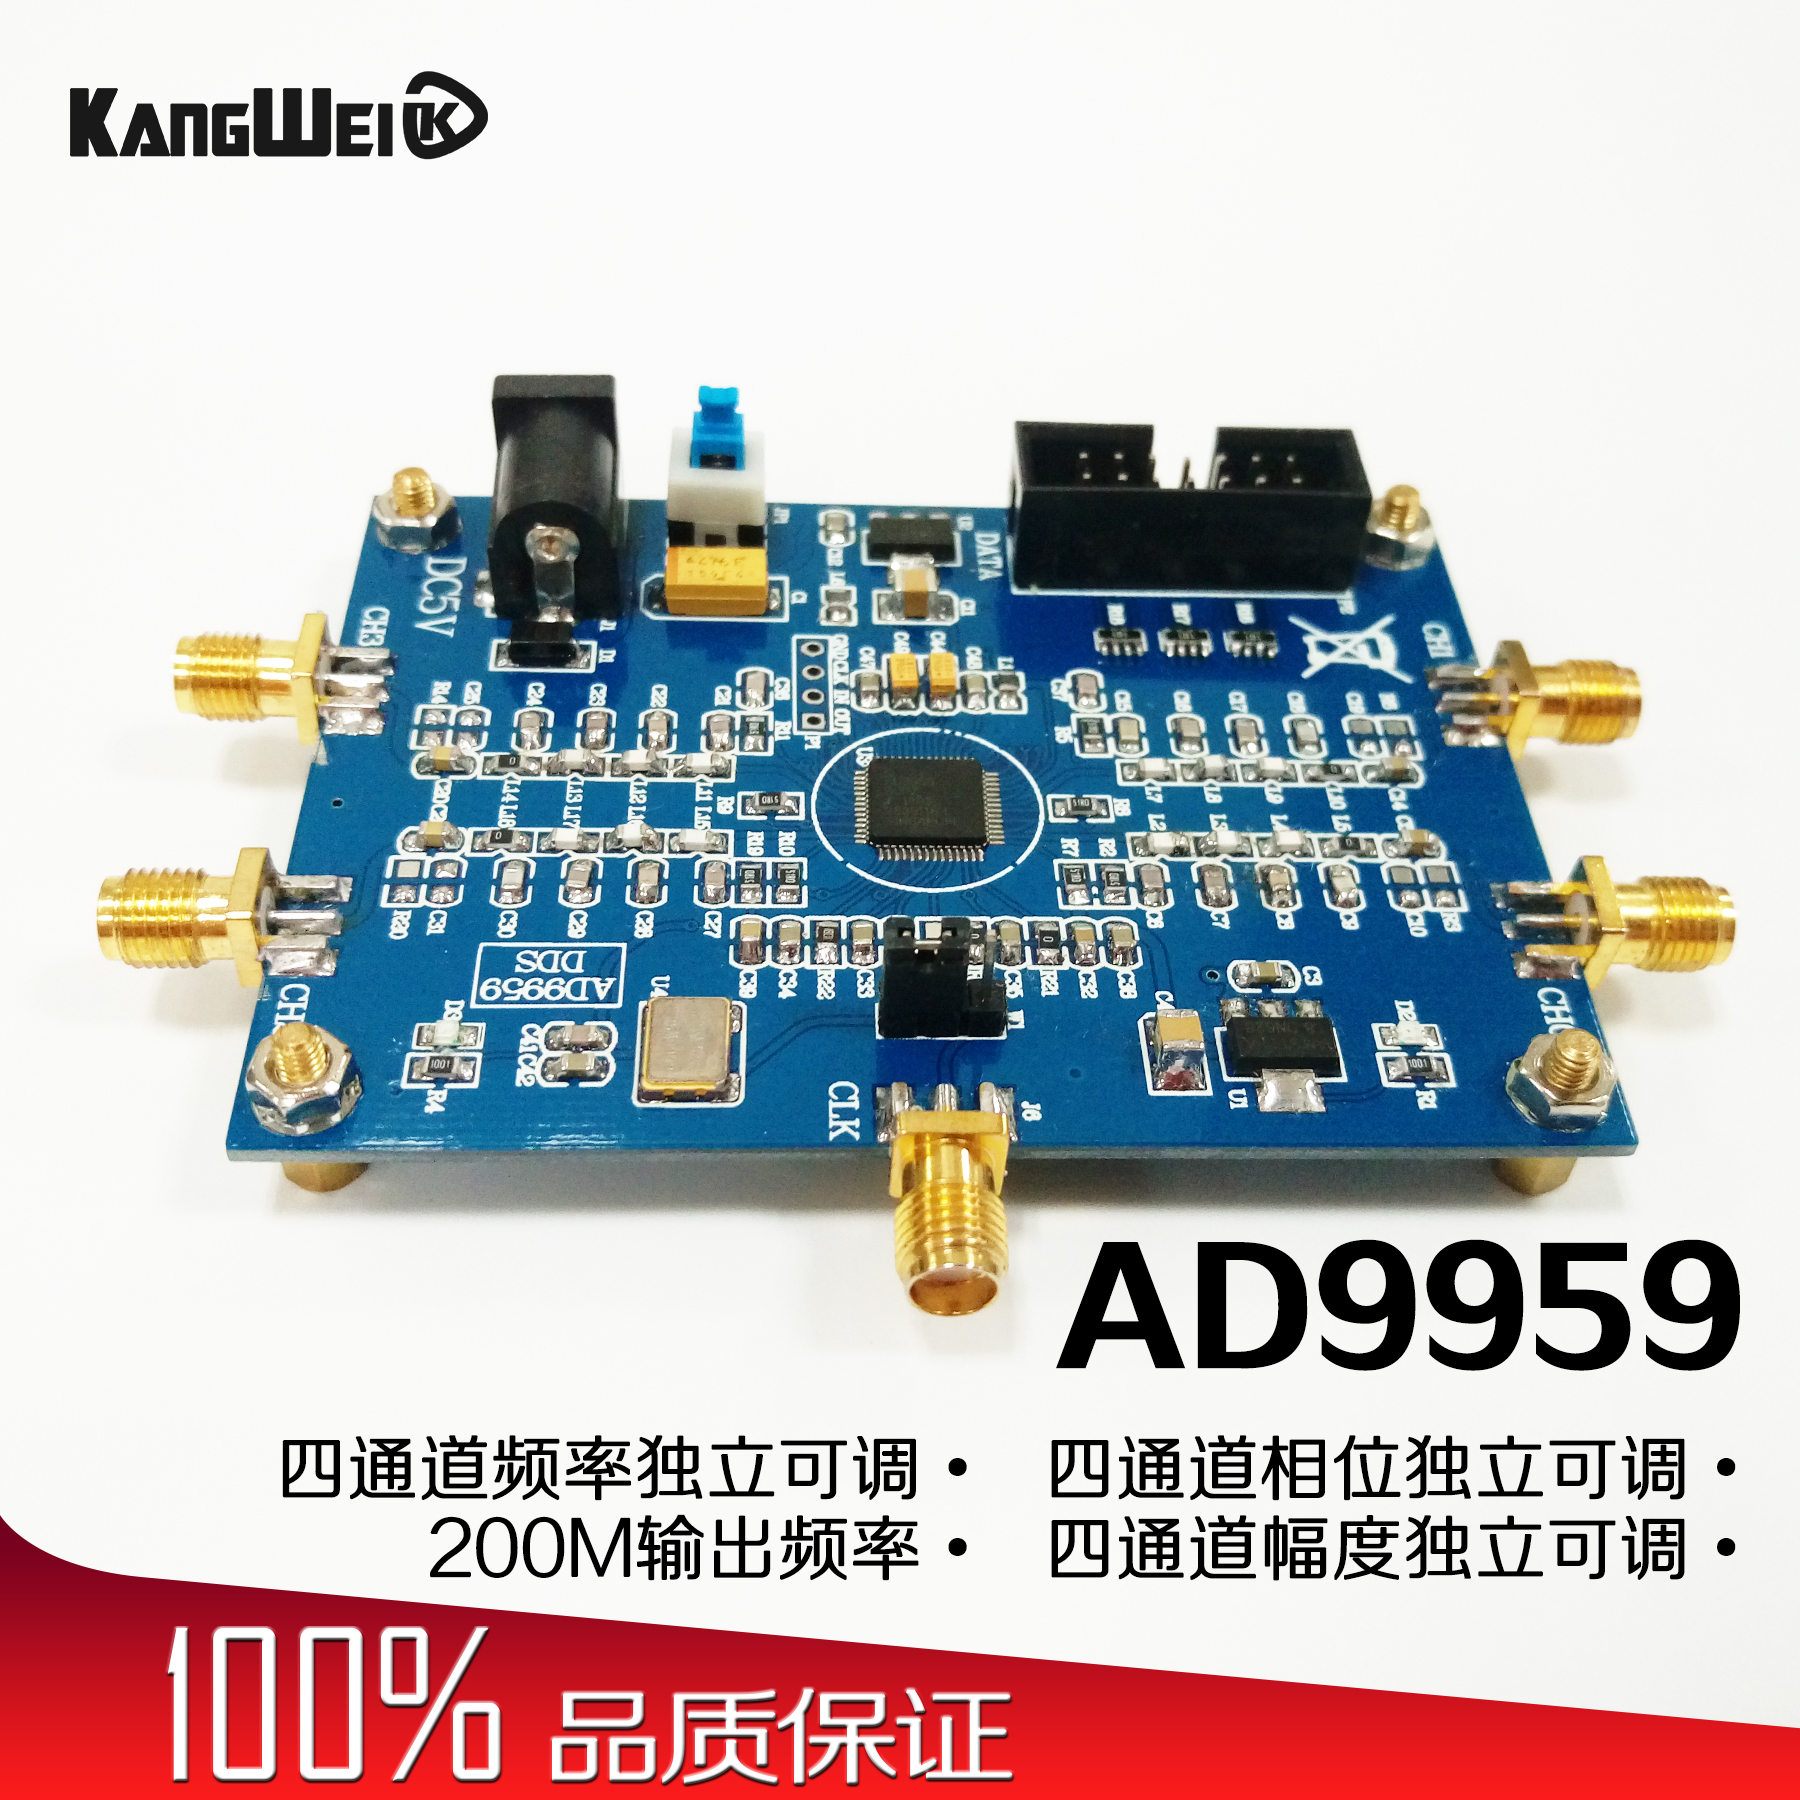 RF Signal Generator AD9959 Signal Generator Four Channel DDS Module Performance Far Exceeds AD9854